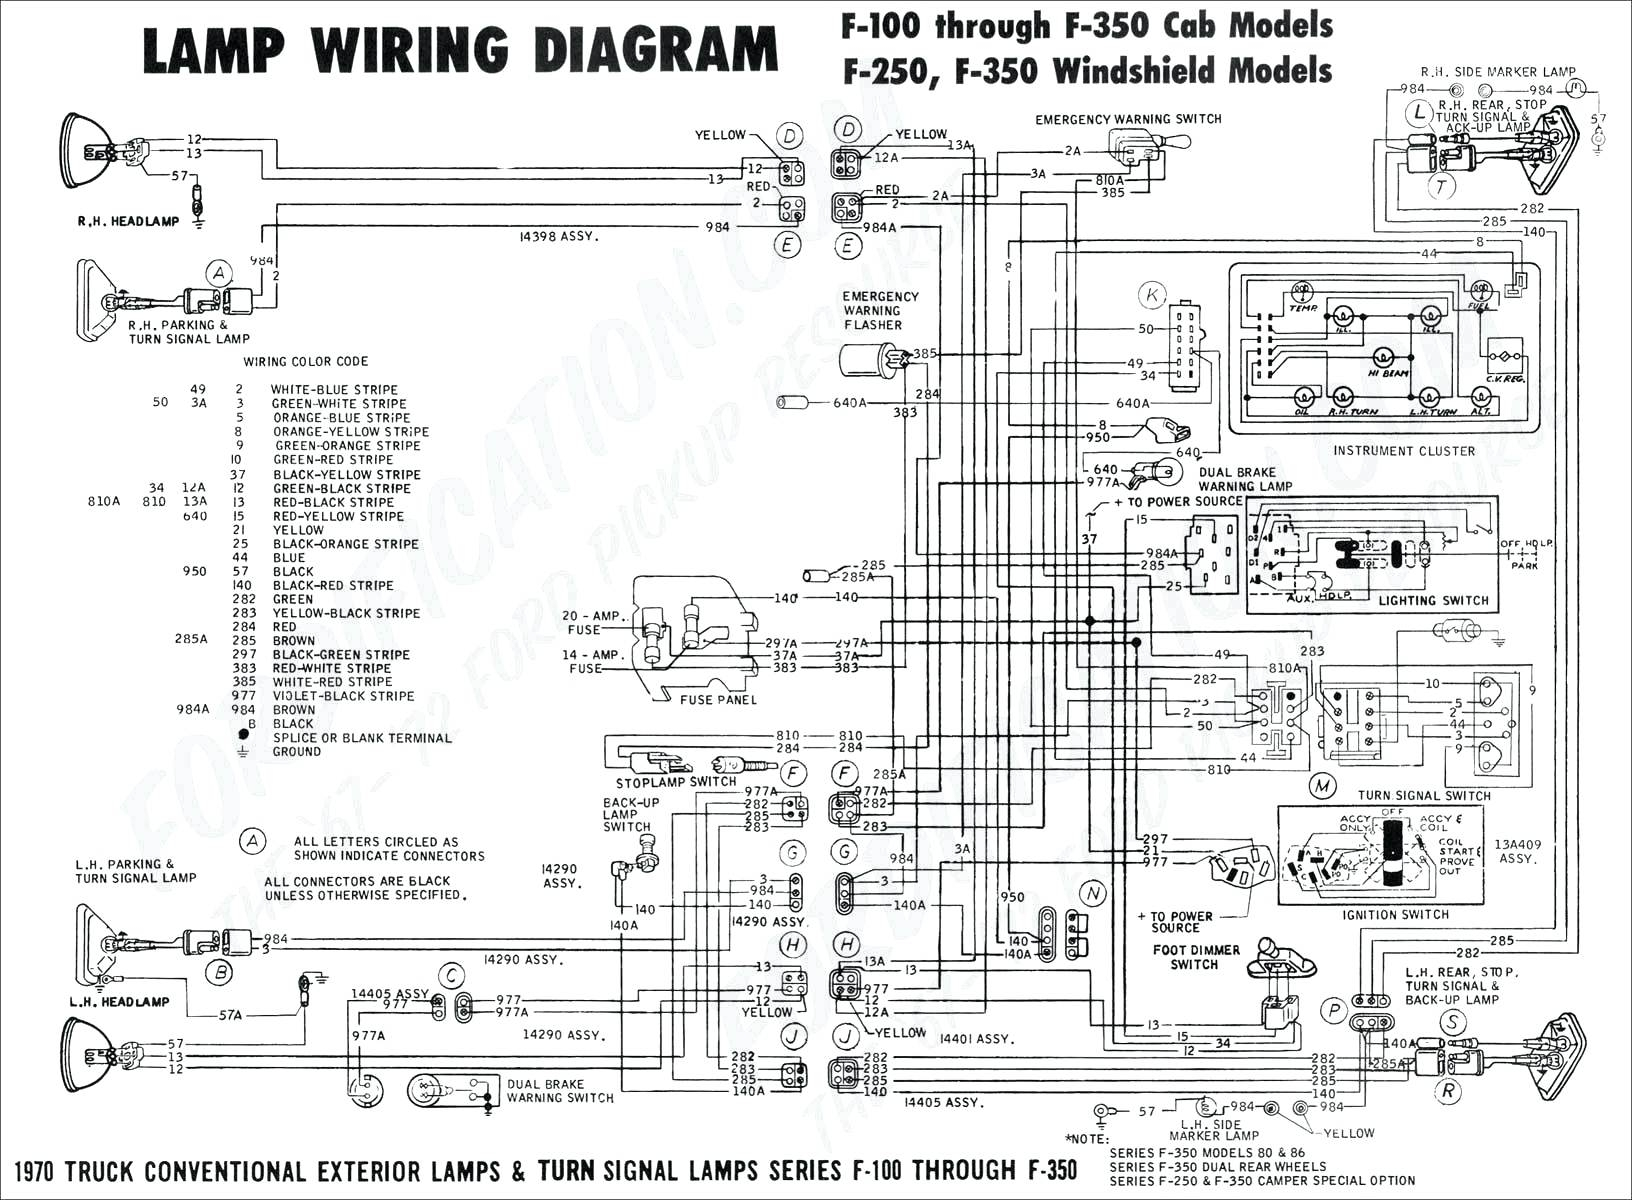 central vacuum wiring schematic Download-2005 ford focus wiring diagram manual original autos weblog wire rh jamairline co 1-b